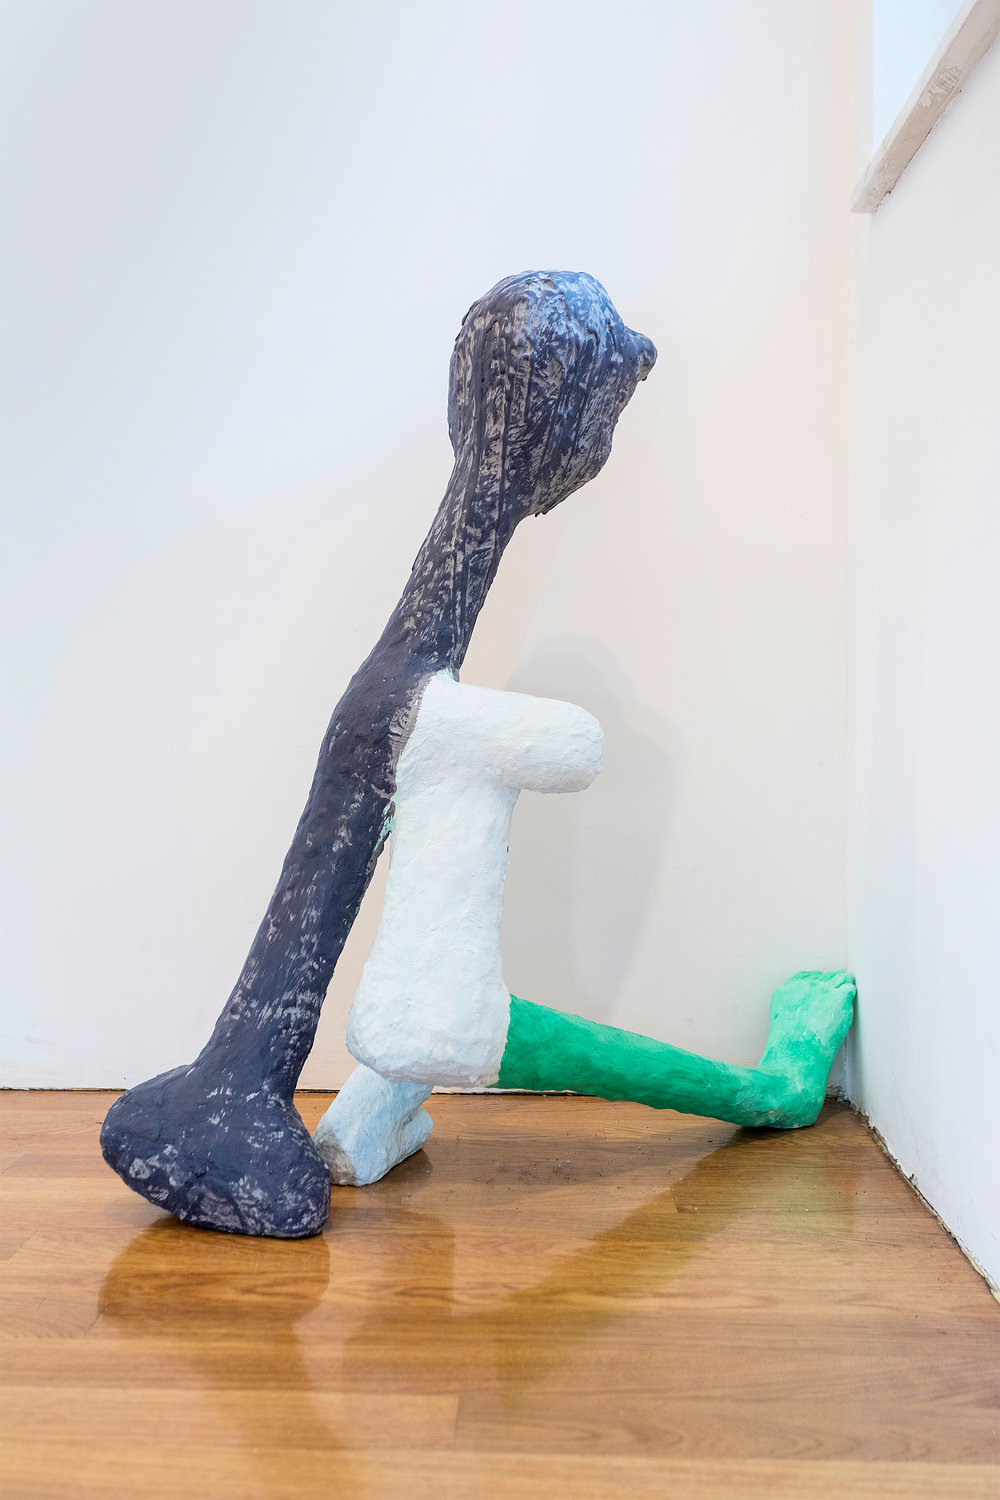 David Humphrey  Green Foot  2016 Plaster, aqua resin, acrylic, and wood 33 x 33 x 10 inches